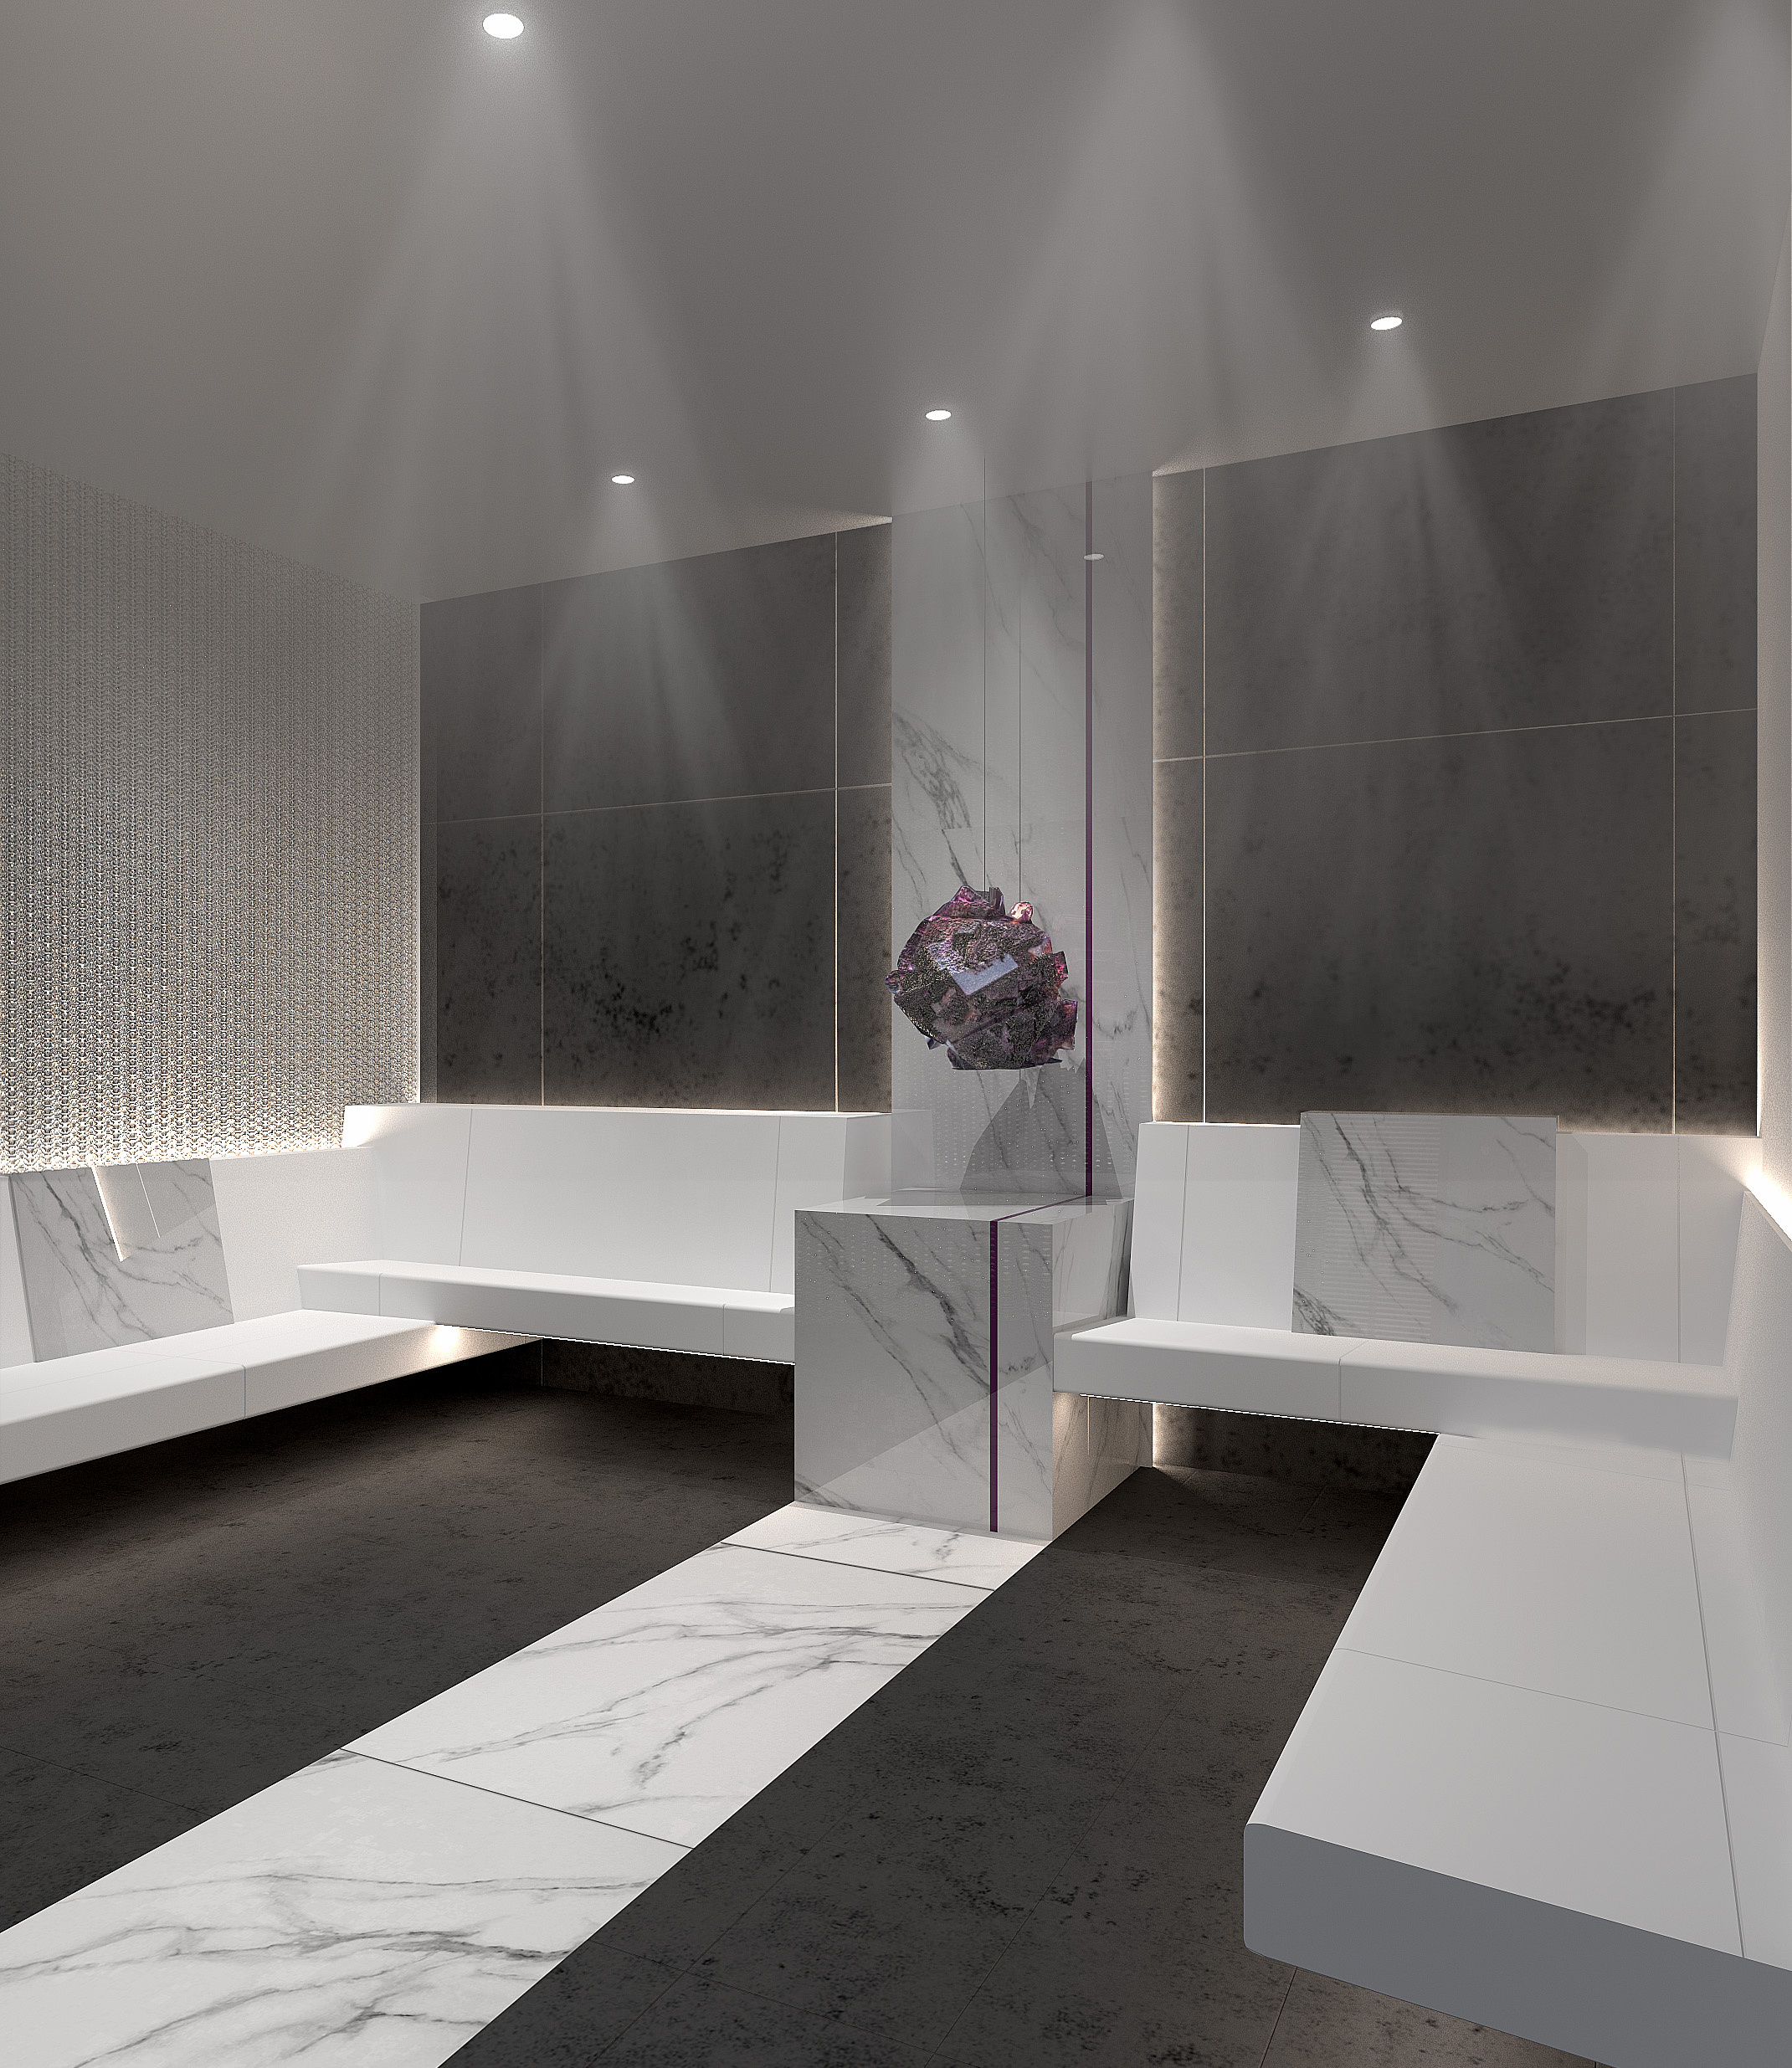 Earth is the element that drives the luminous Crystalarium at The Spa on Celebrity Edge, where a crystal serves as the conduit for natural healing energy, and gentle warmth exudes from the natural stone walls.